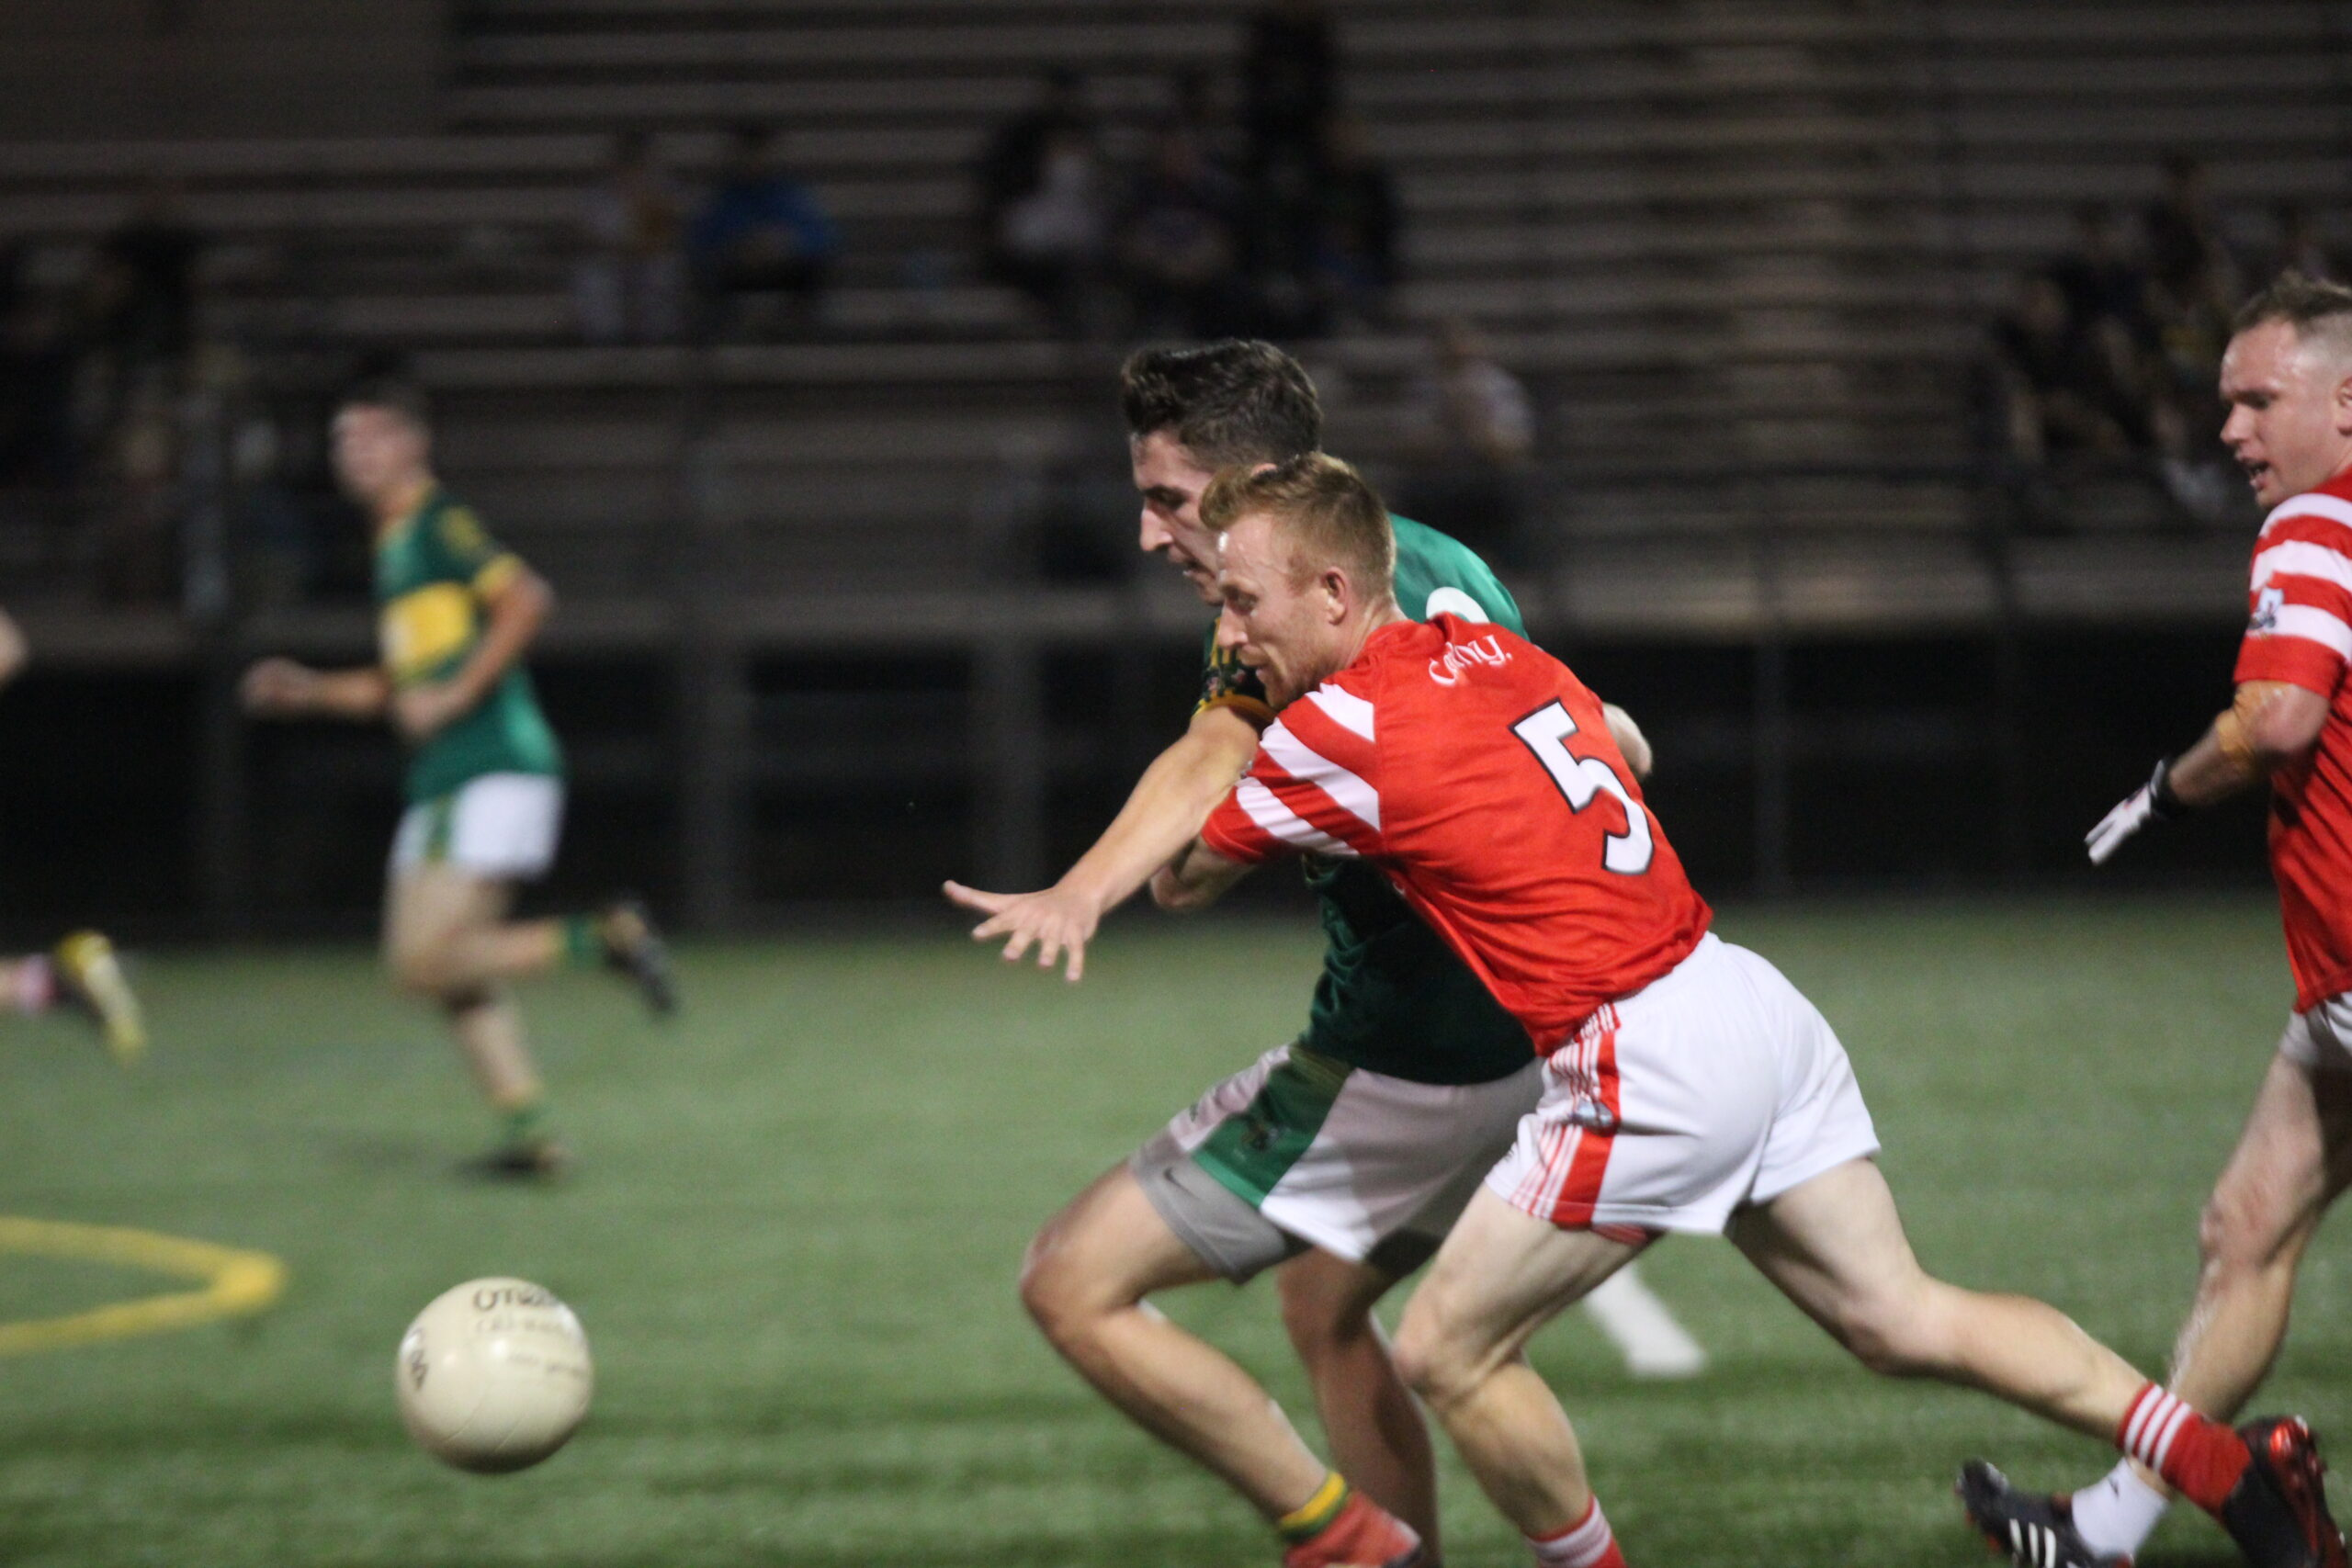 Action from Cork v St. Barnabas in the 2021 Bew York Junior A Football Final (Photo by Sharon Redican)